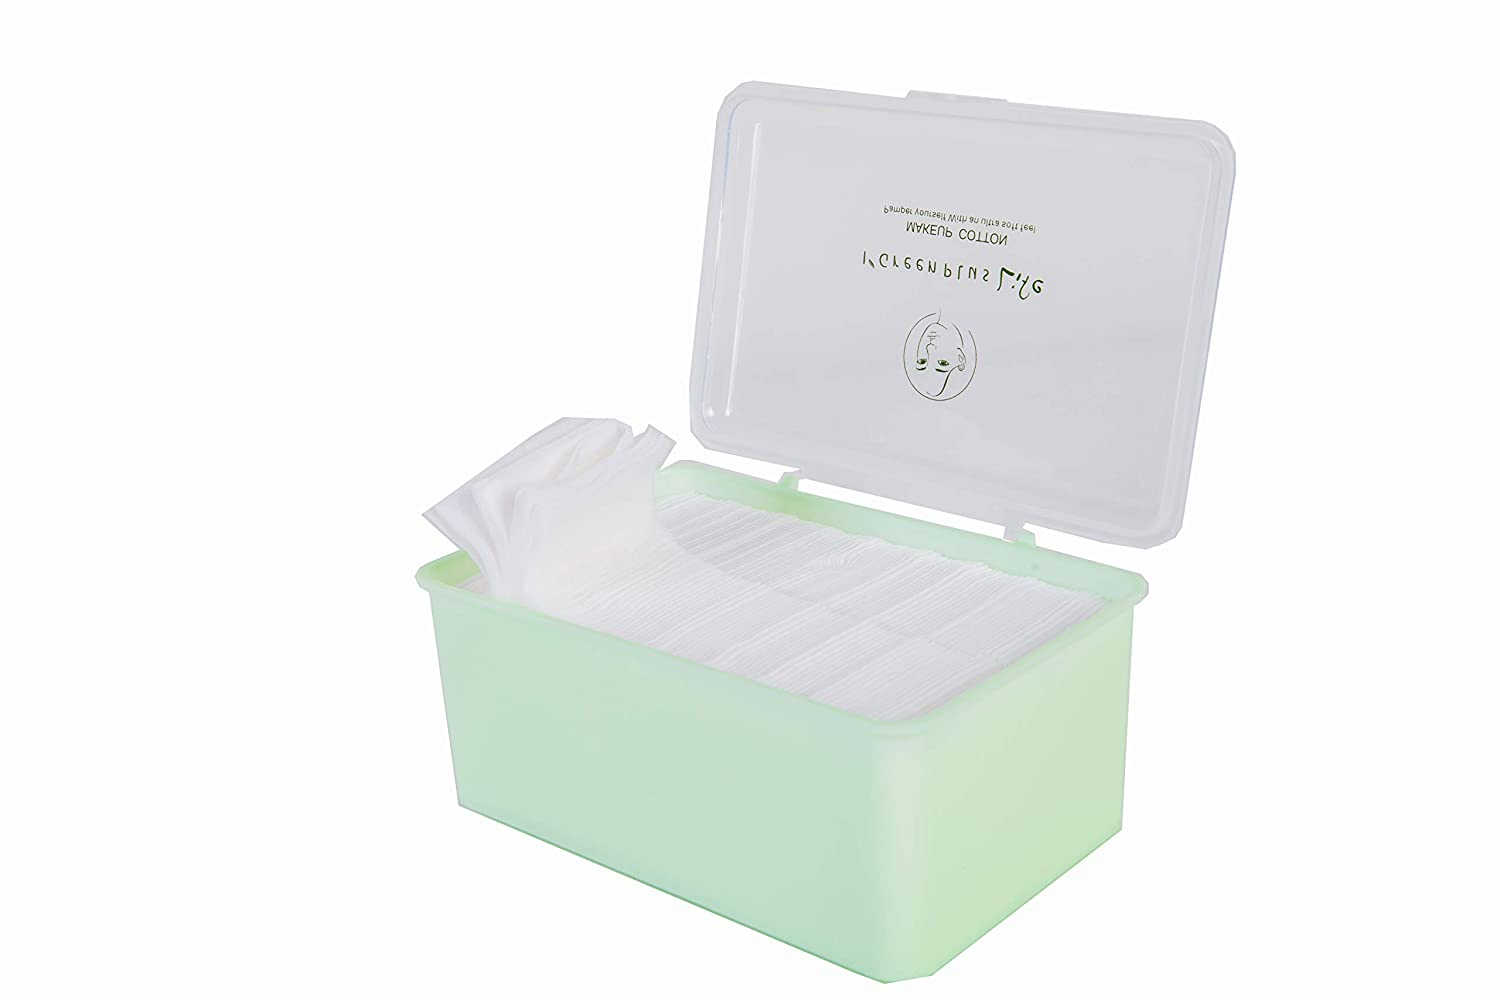 900 Count Makeup Remover Pads Hypoallergenic Lint-Free 100% Pure Cotton Pads Size: One box contains 900 pieces of cotton pad, 6cm5cm